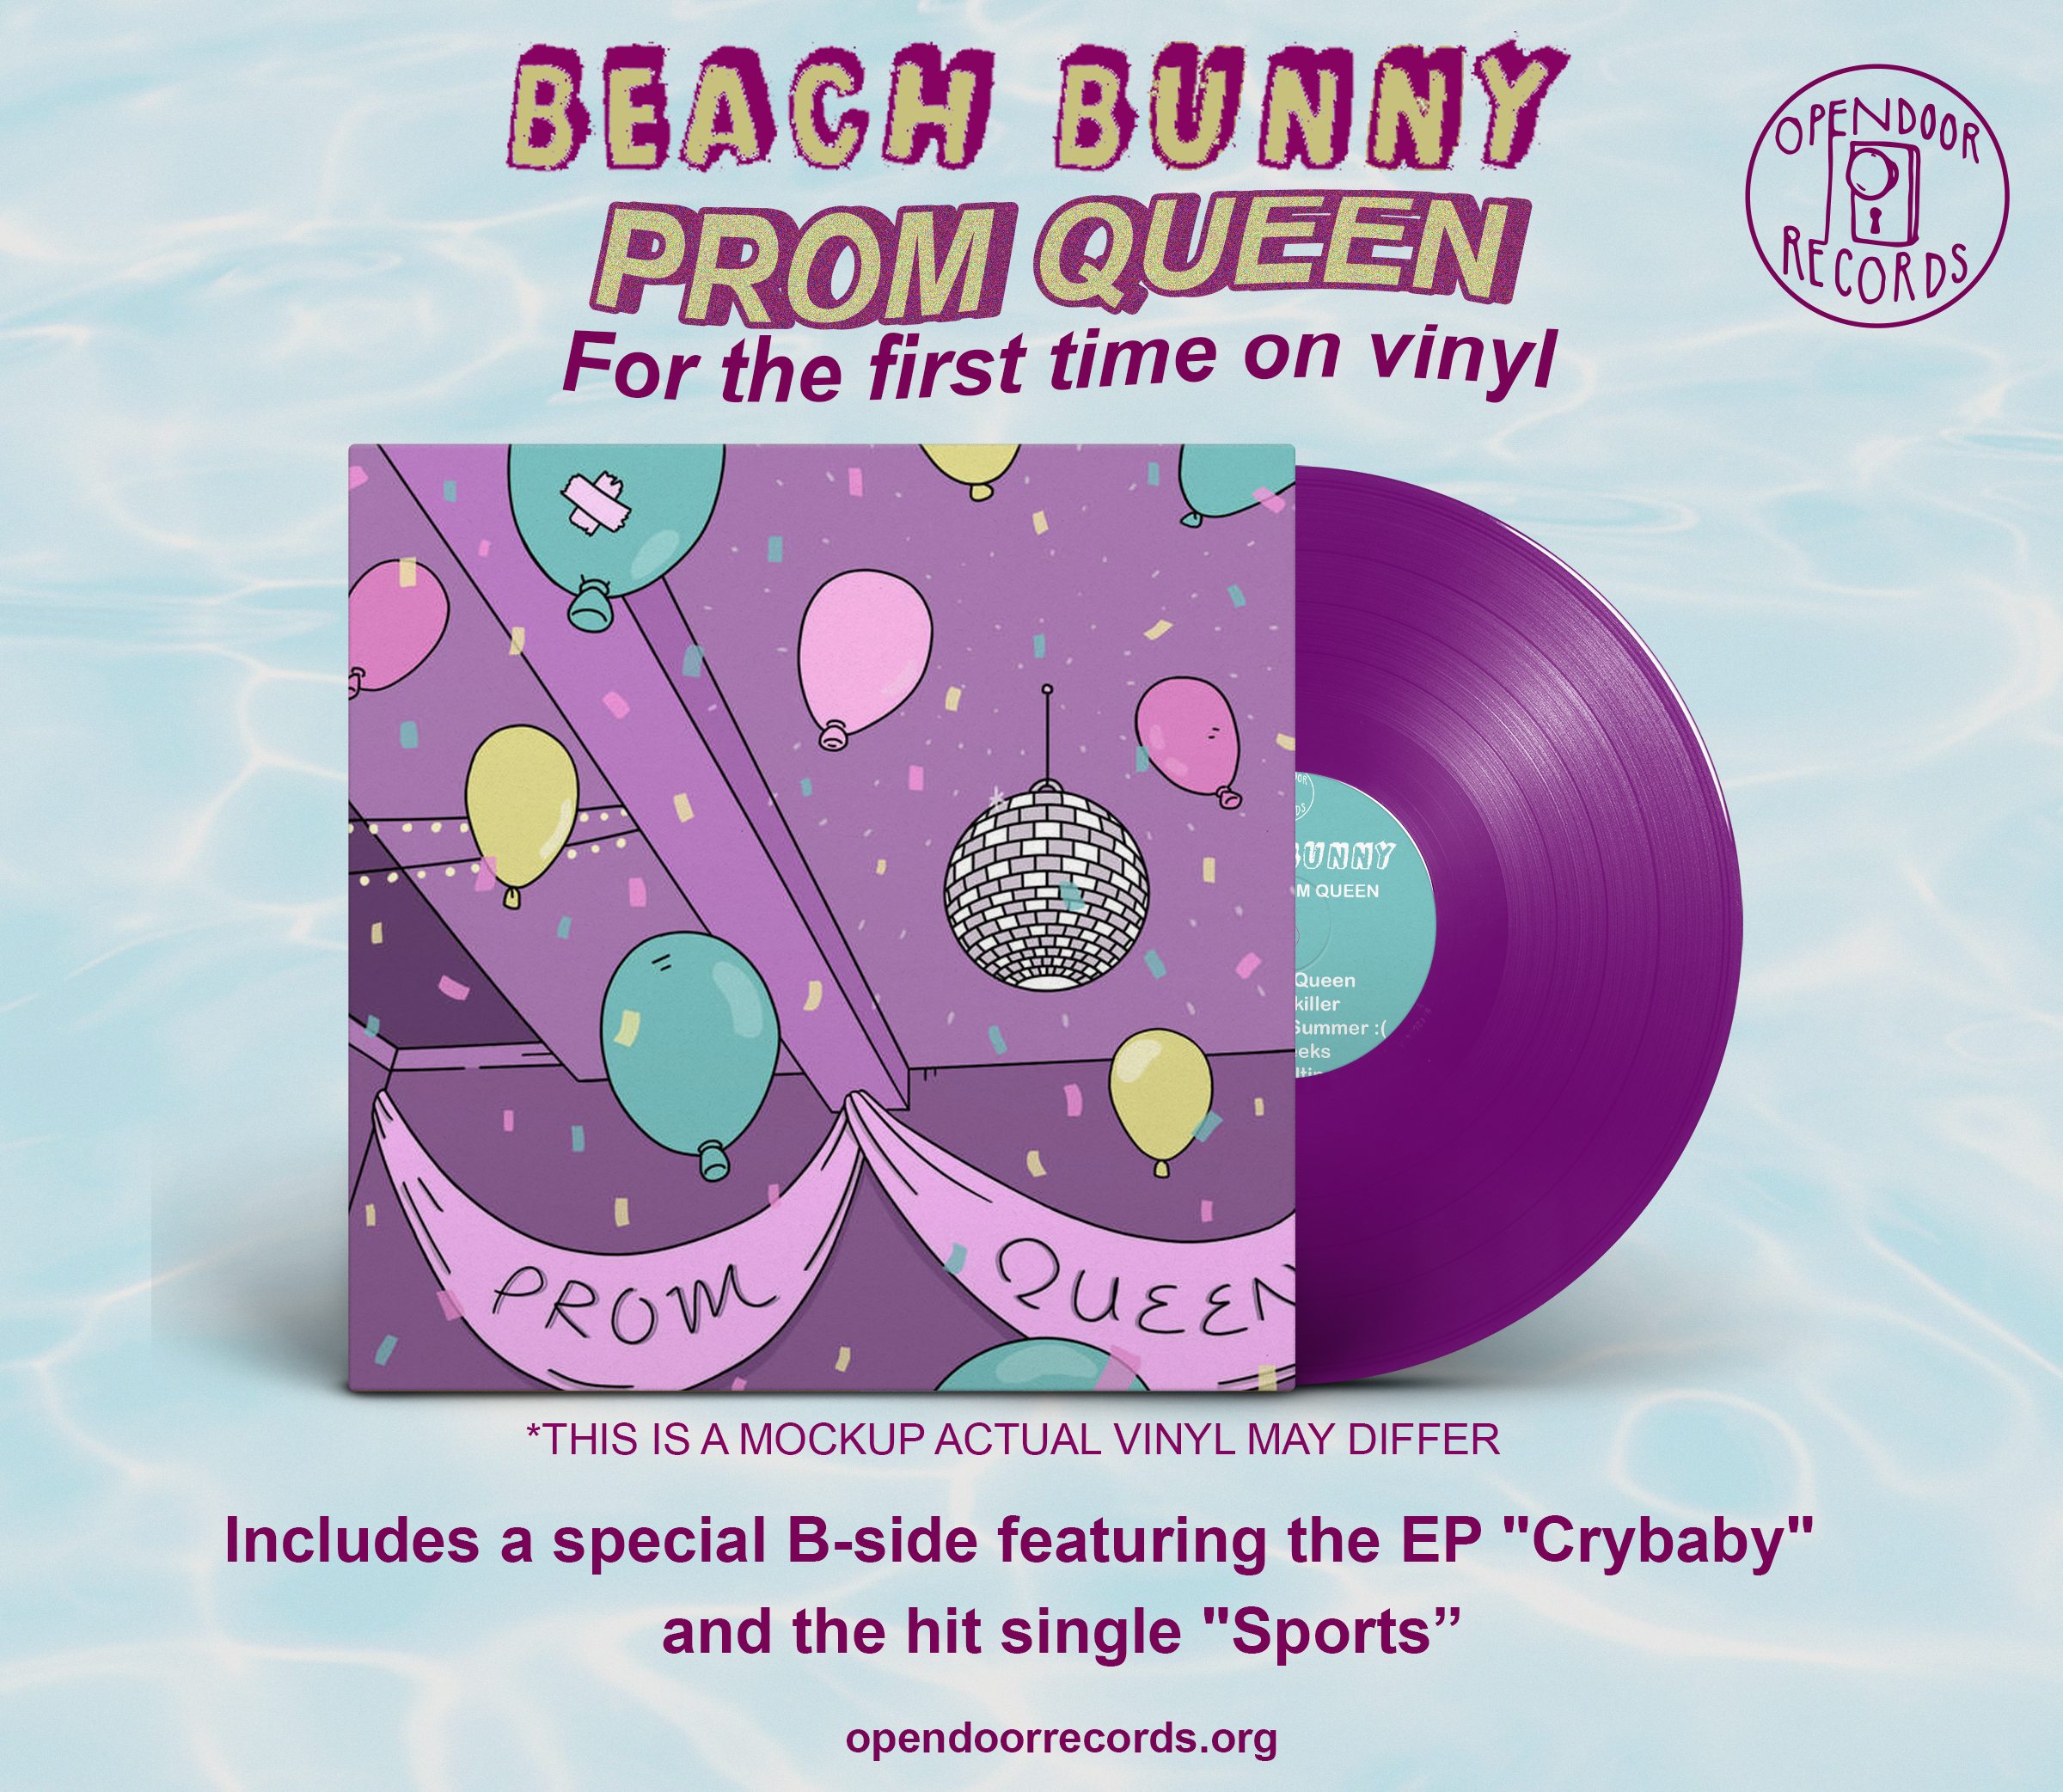 Beach Bunny - Prom Queen + Crybaby / Sports 12